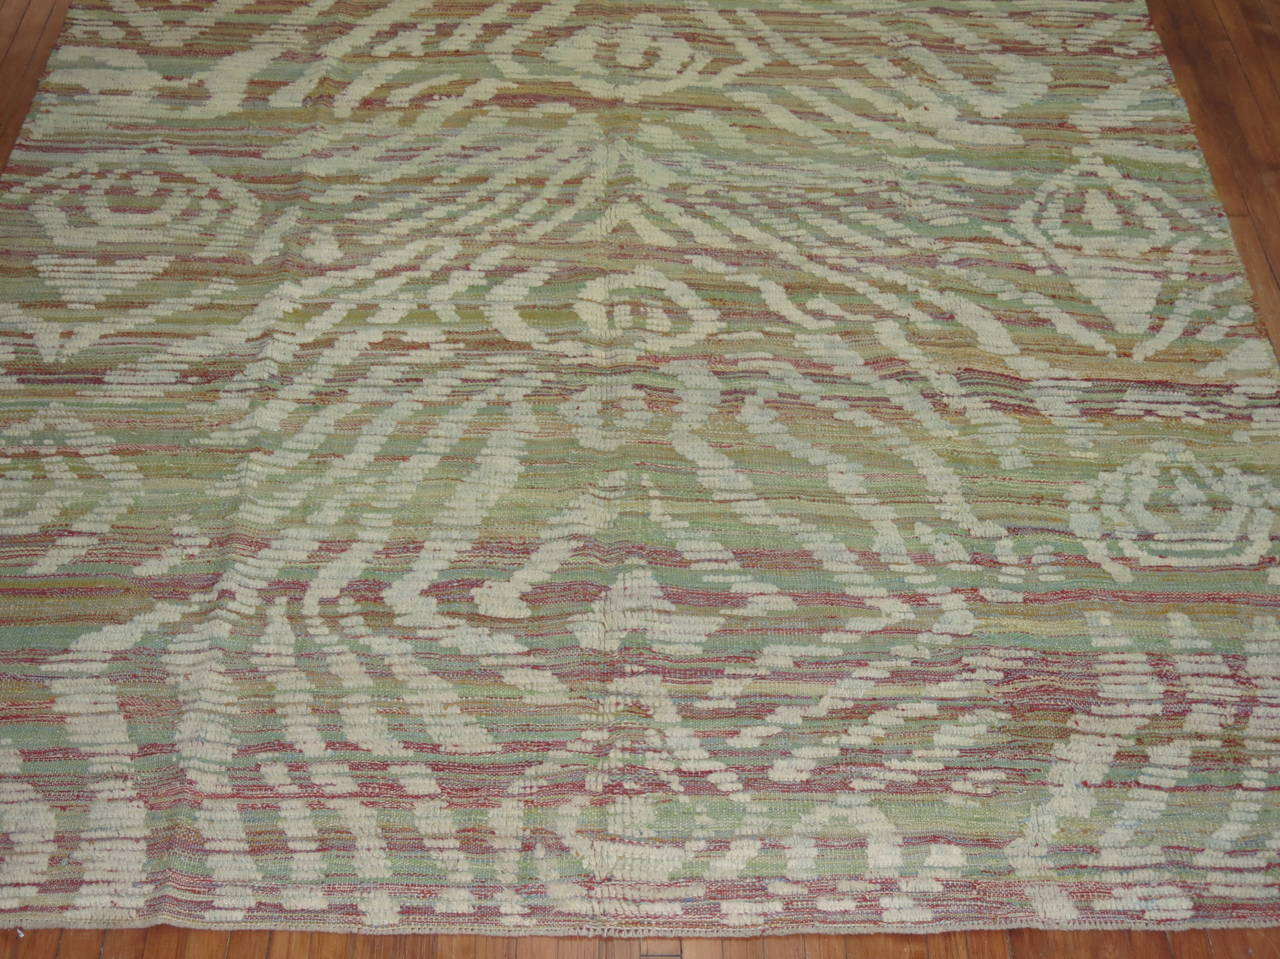 Hand-Knotted Turkish Inspired Flat-Weave Carpet For Sale